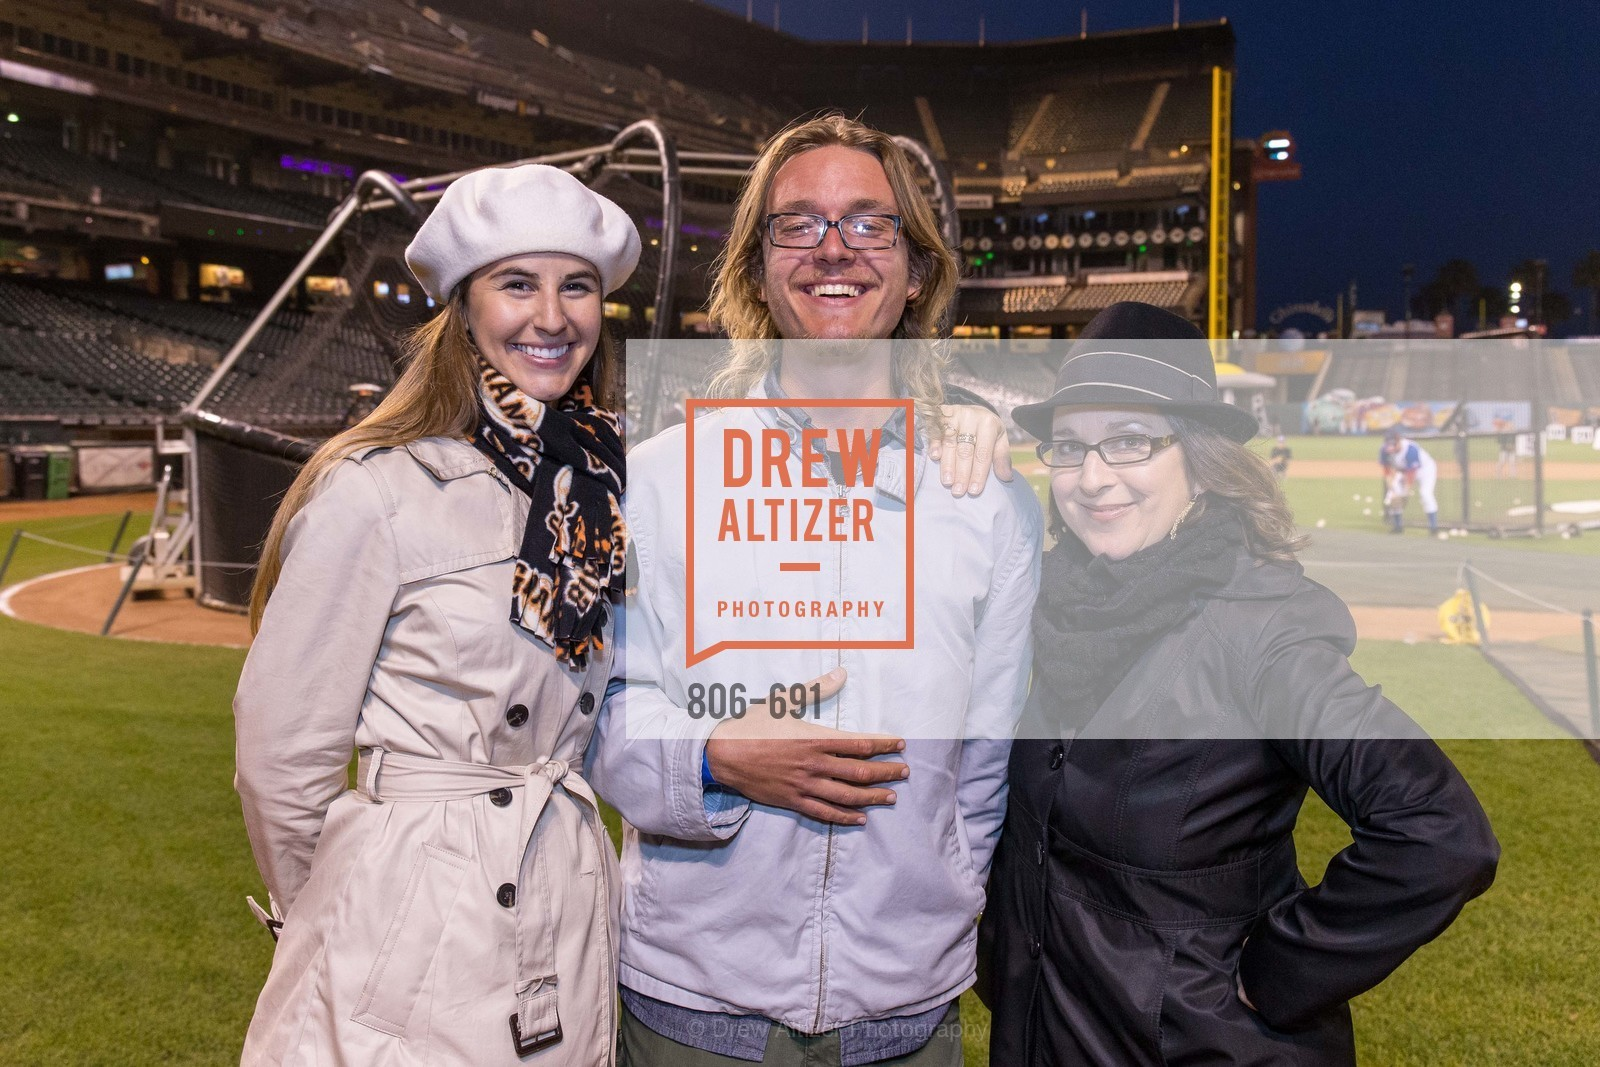 Erin Putnam, Kai Lyson, Rebeca Mauleon, ST. FRANCIS FOUNDATION'S Knock It Out of the Park, US, June 4th, 2015,Drew Altizer, Drew Altizer Photography, full-service agency, private events, San Francisco photographer, photographer california